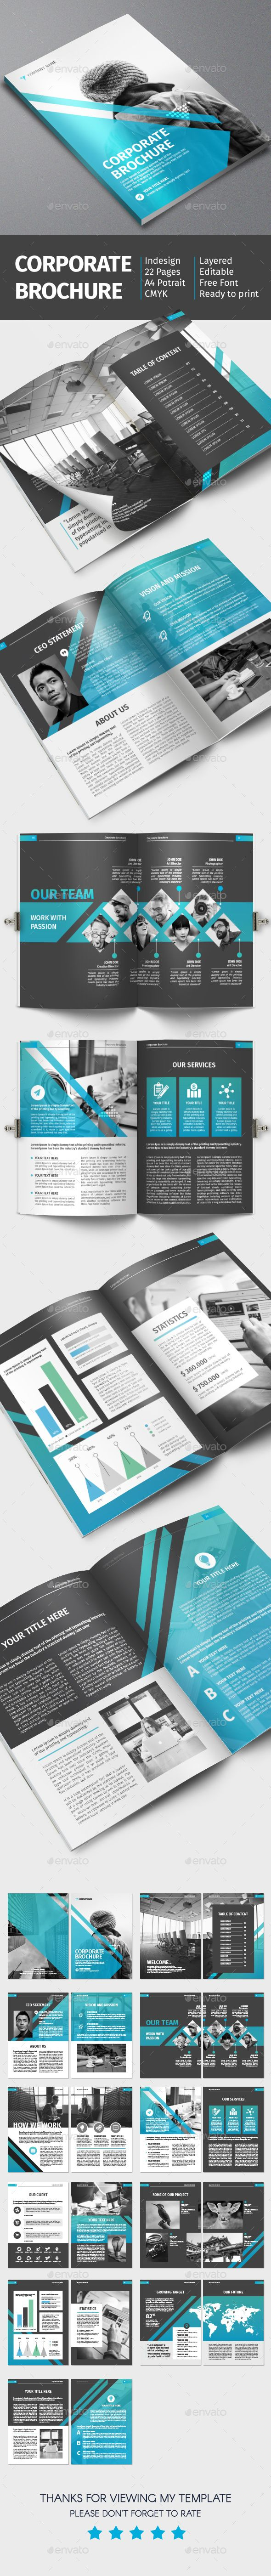 Convert Your Text Into PDF! https://www.fiverr.com/aminulv/design-book-ebook-interior-or-layout